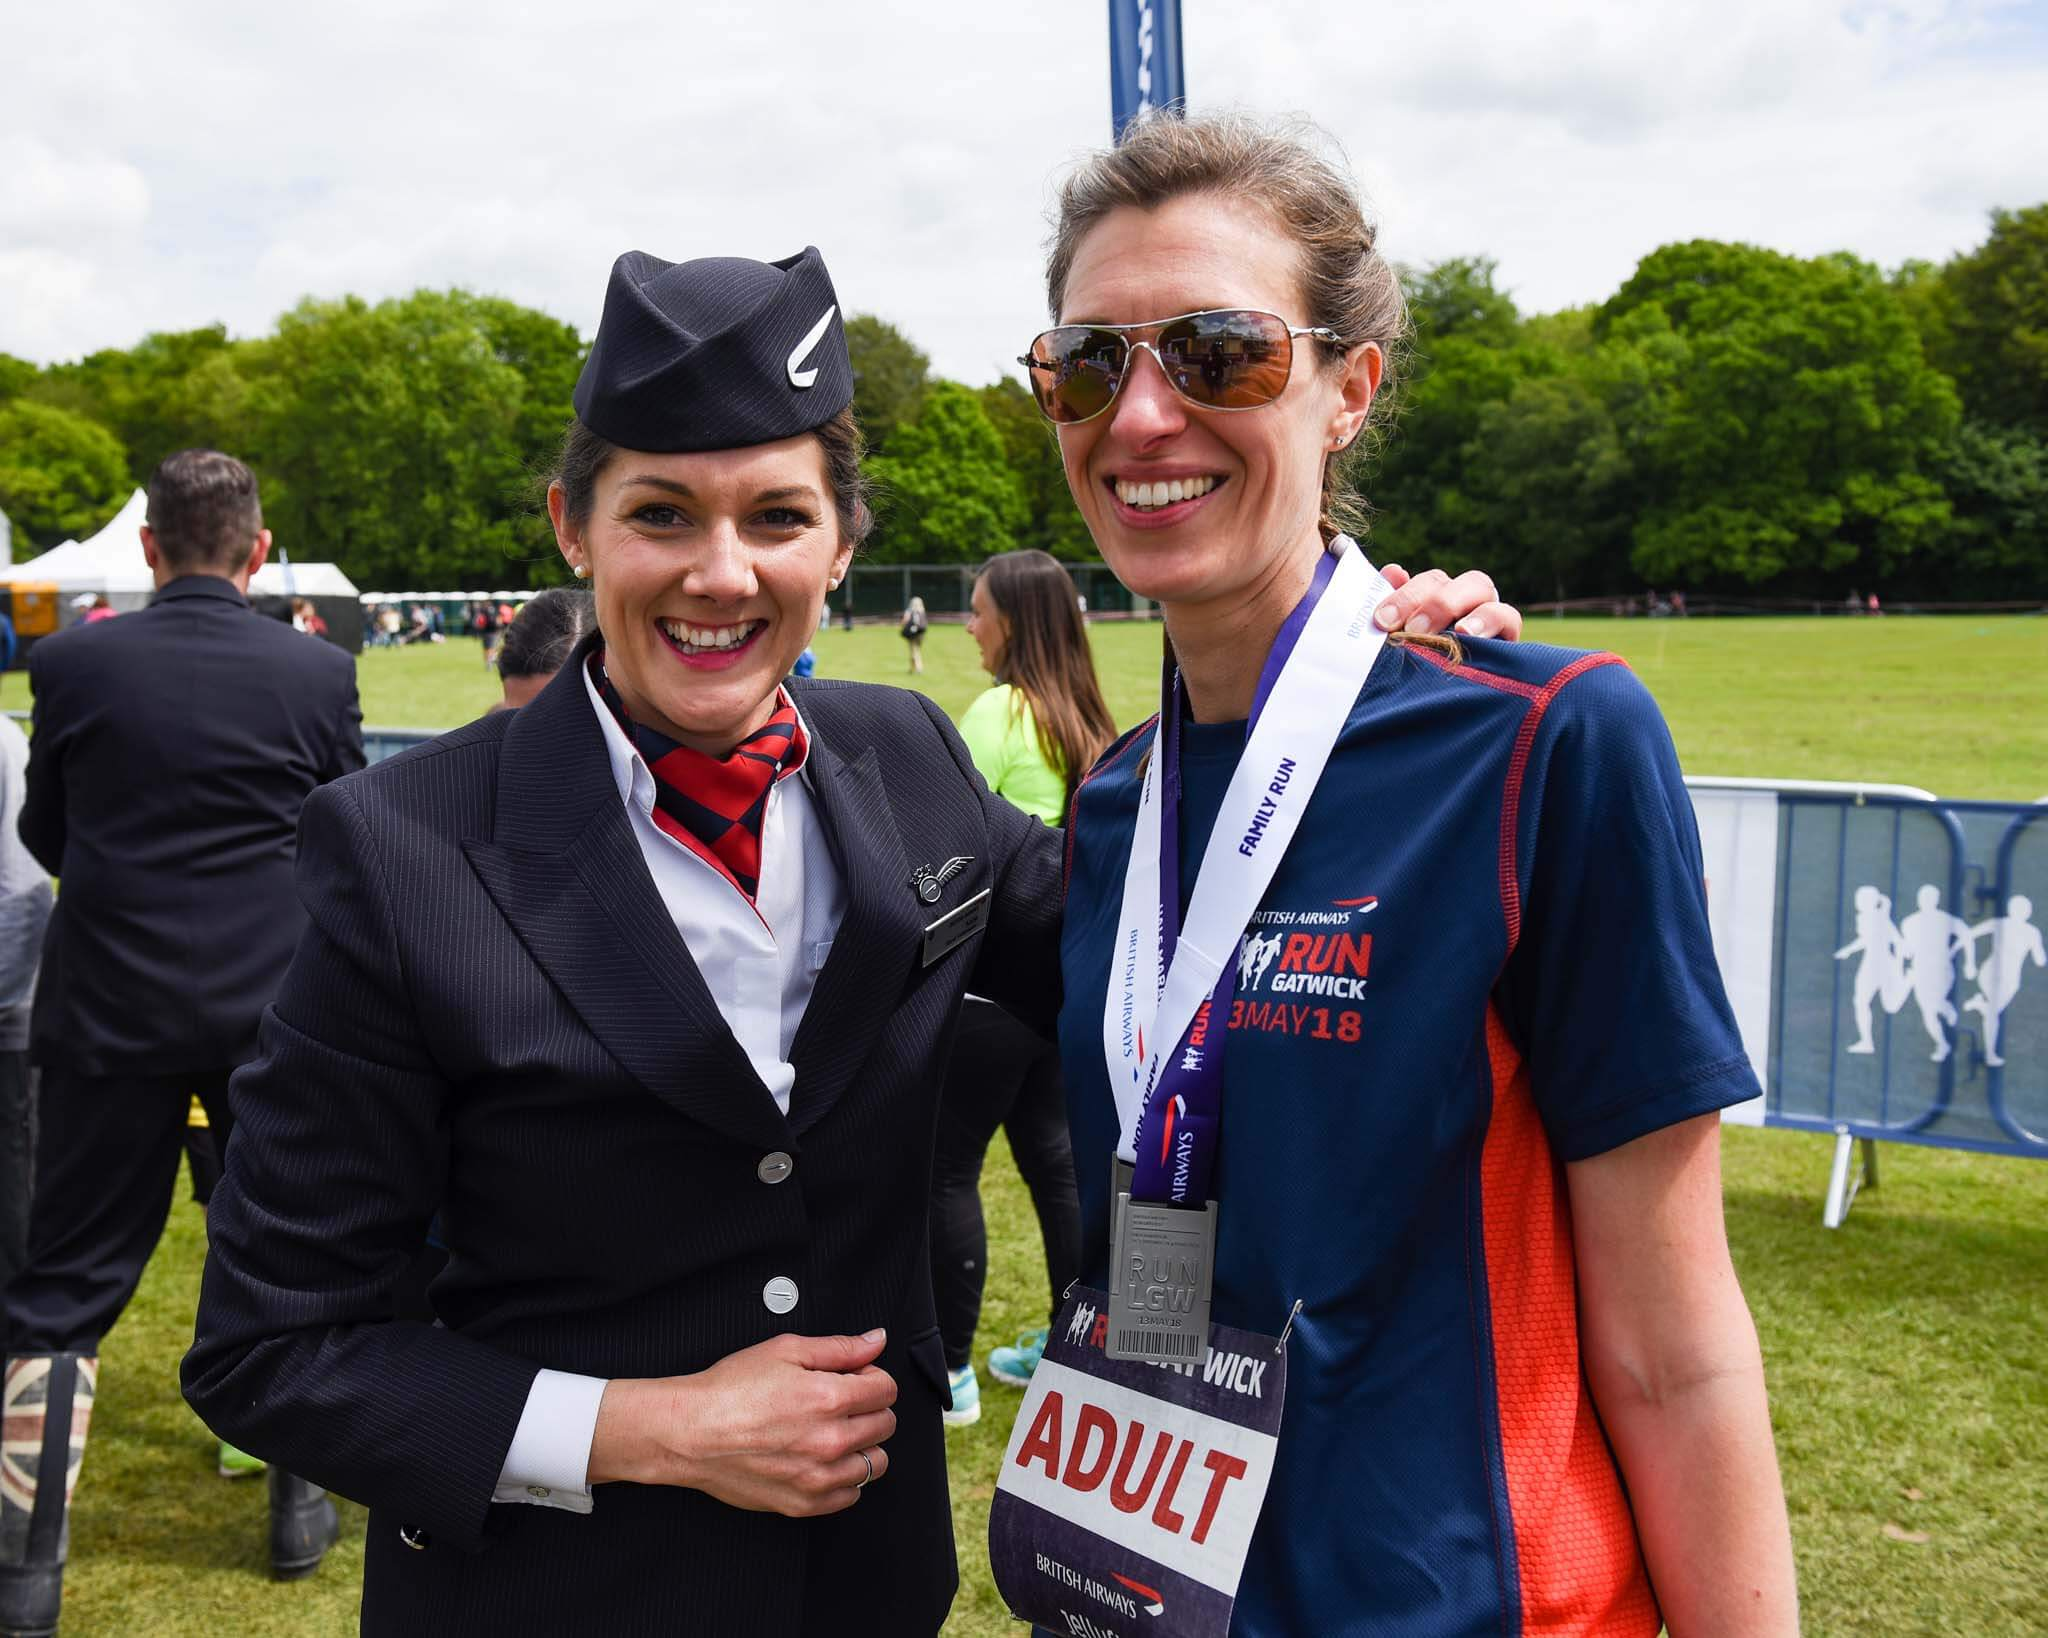 British Airways Run Gatwick | Event Preview